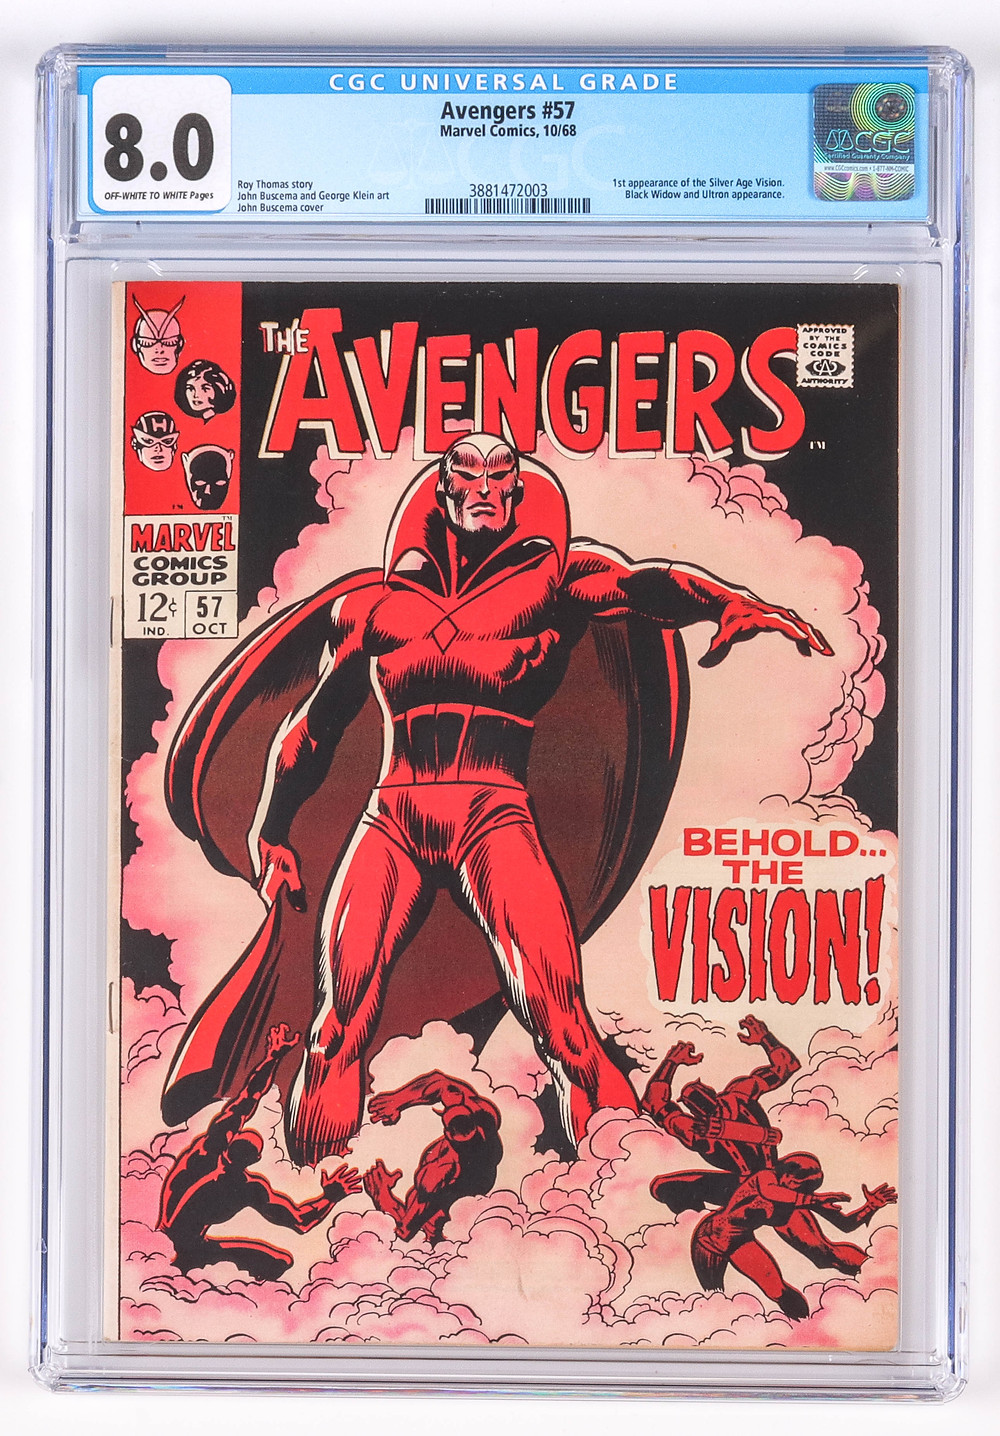 Avengers No 57 first Vision, CGC 8.0 offwhite-white pages, first appearance of Silver Age Vision, Black Widow & Ultron appearance, not pressed or cleaned prior to grading by CGC, grader notes include slight soiling, slight spine stress, very small very light crease, light foxing